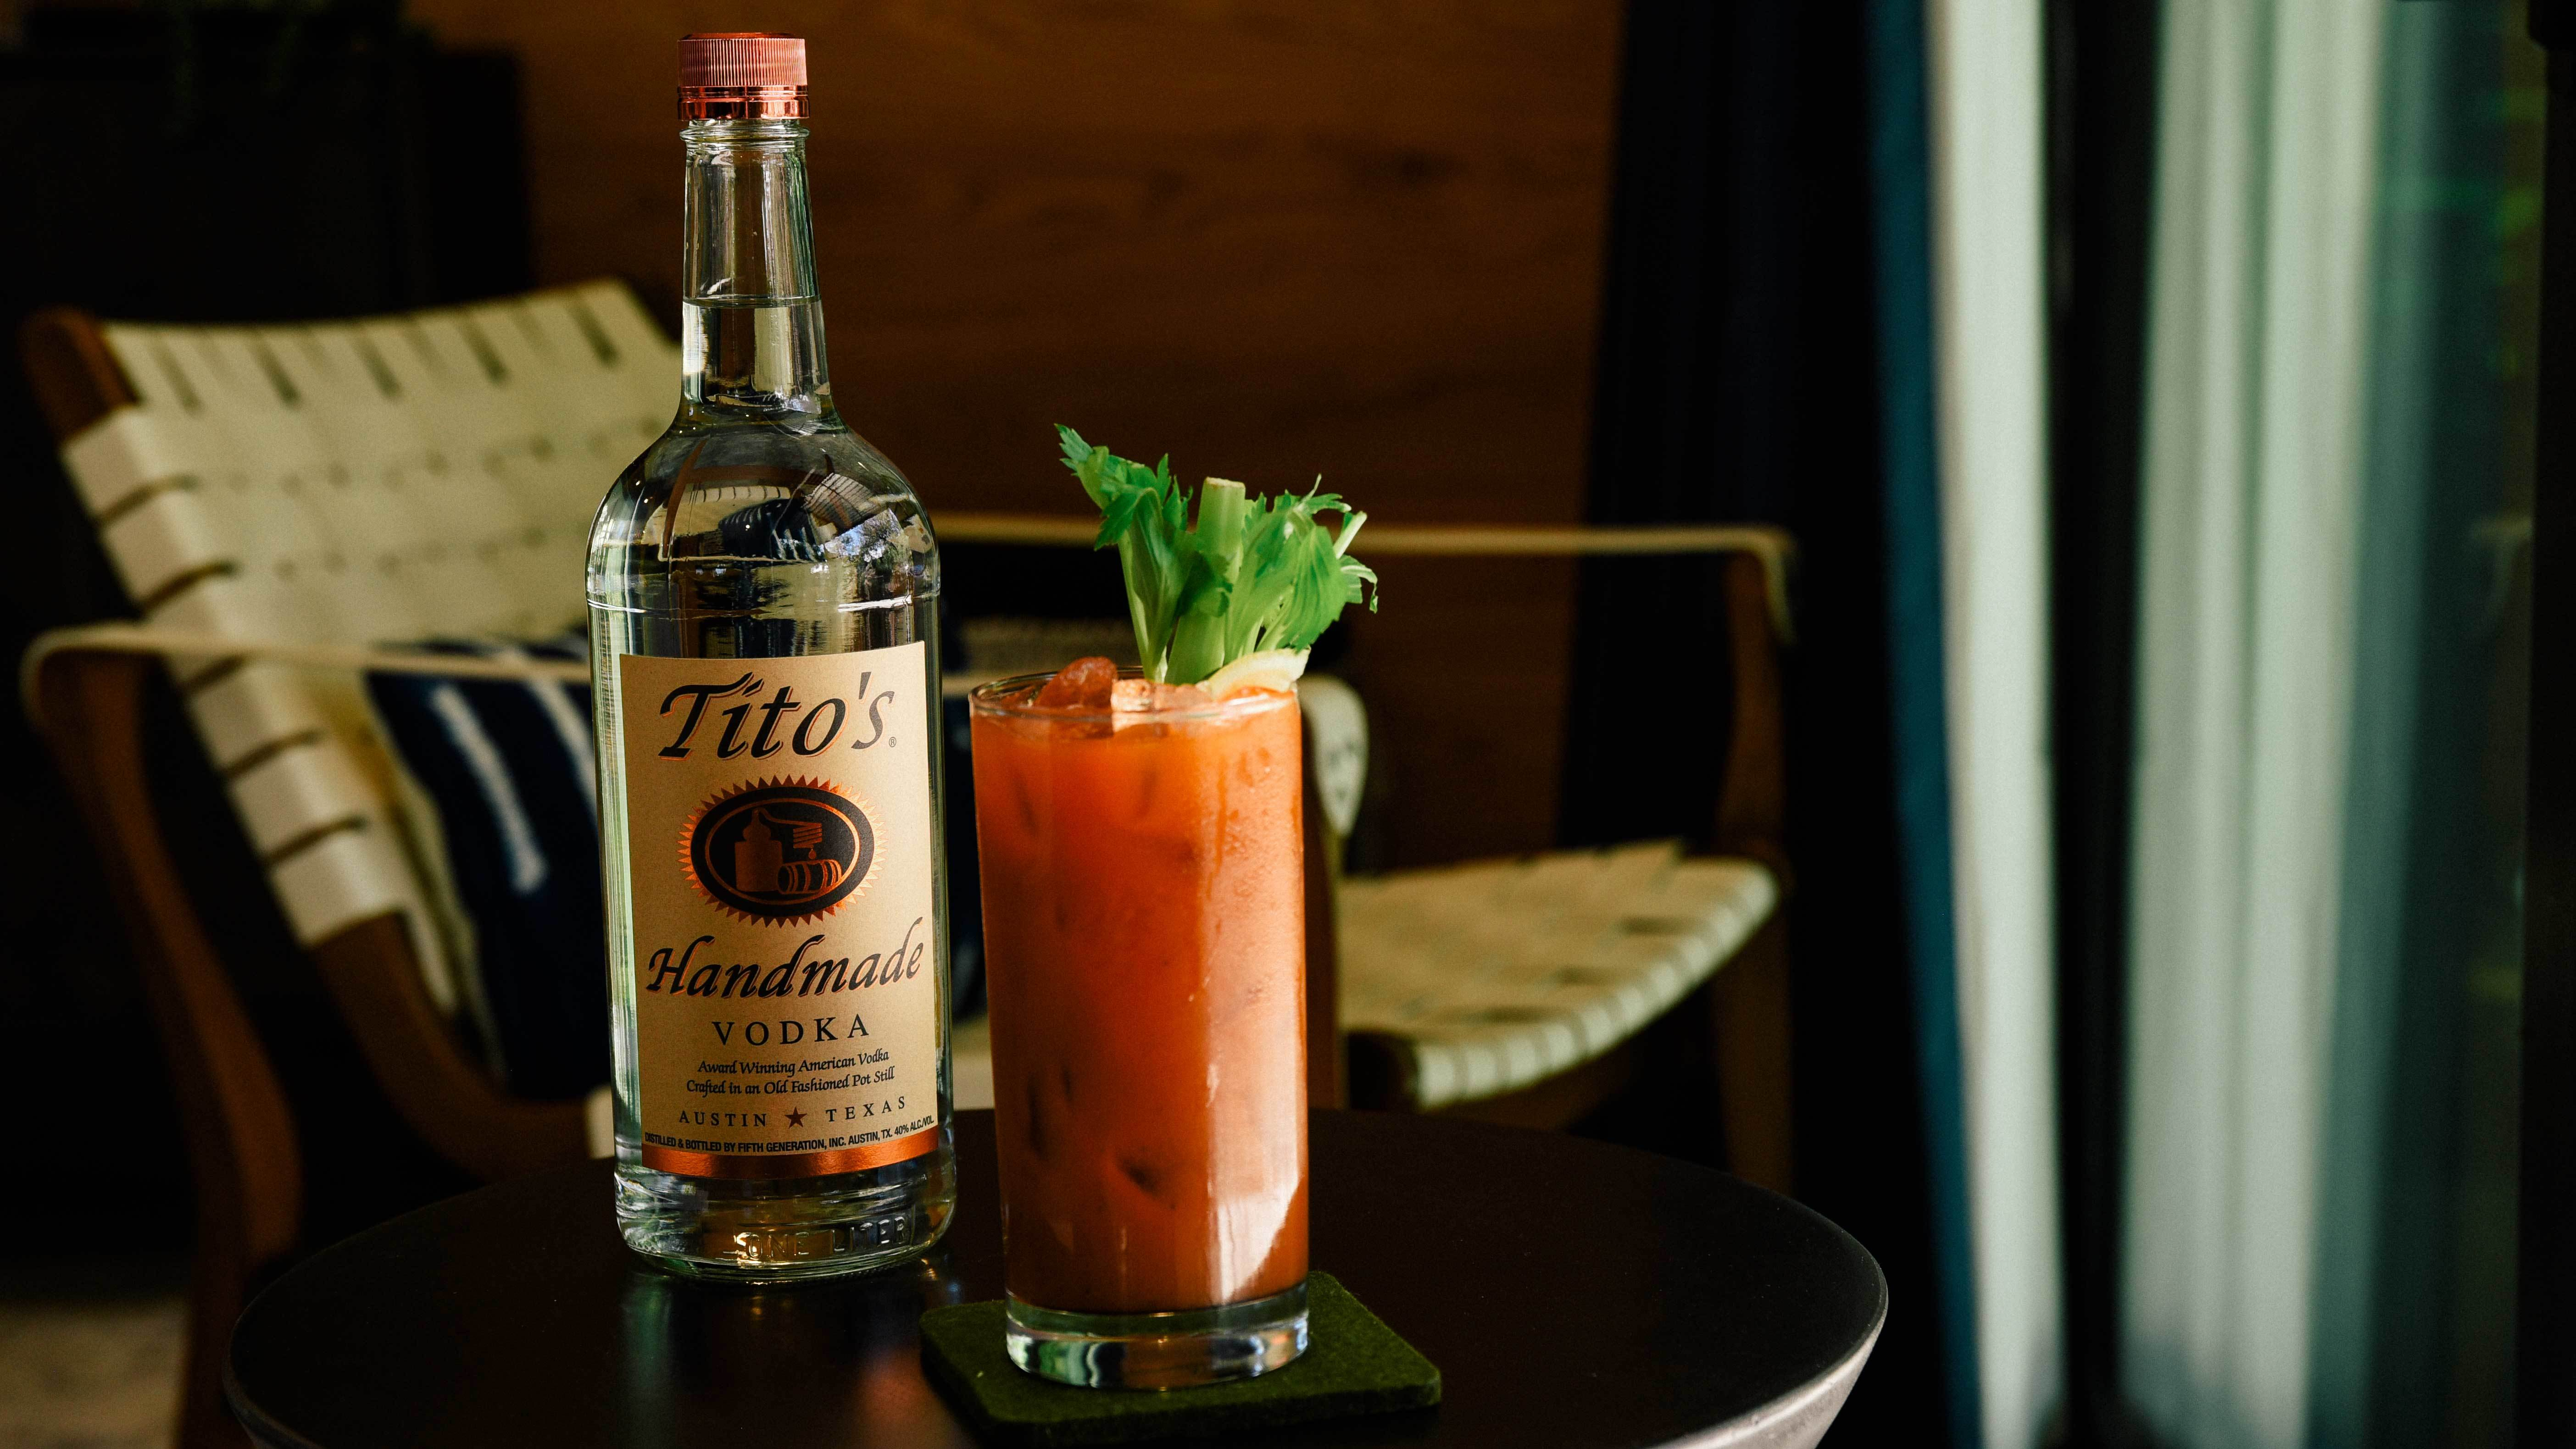 Tito's Cucumber Bloody Mary garnished with celery